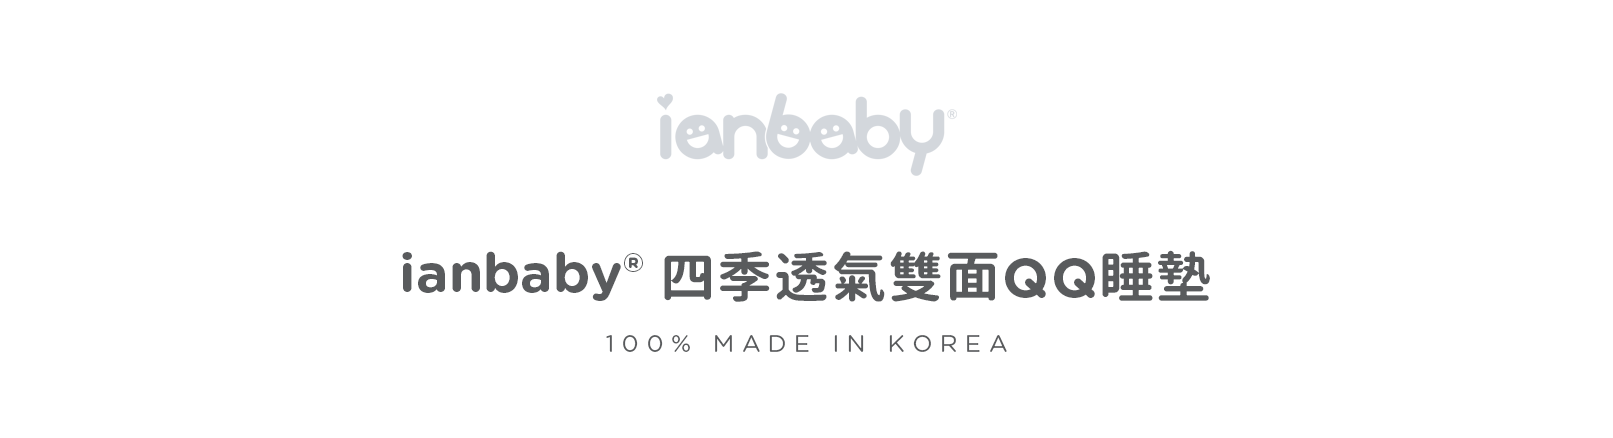 ianbaby-RM-G_01.png